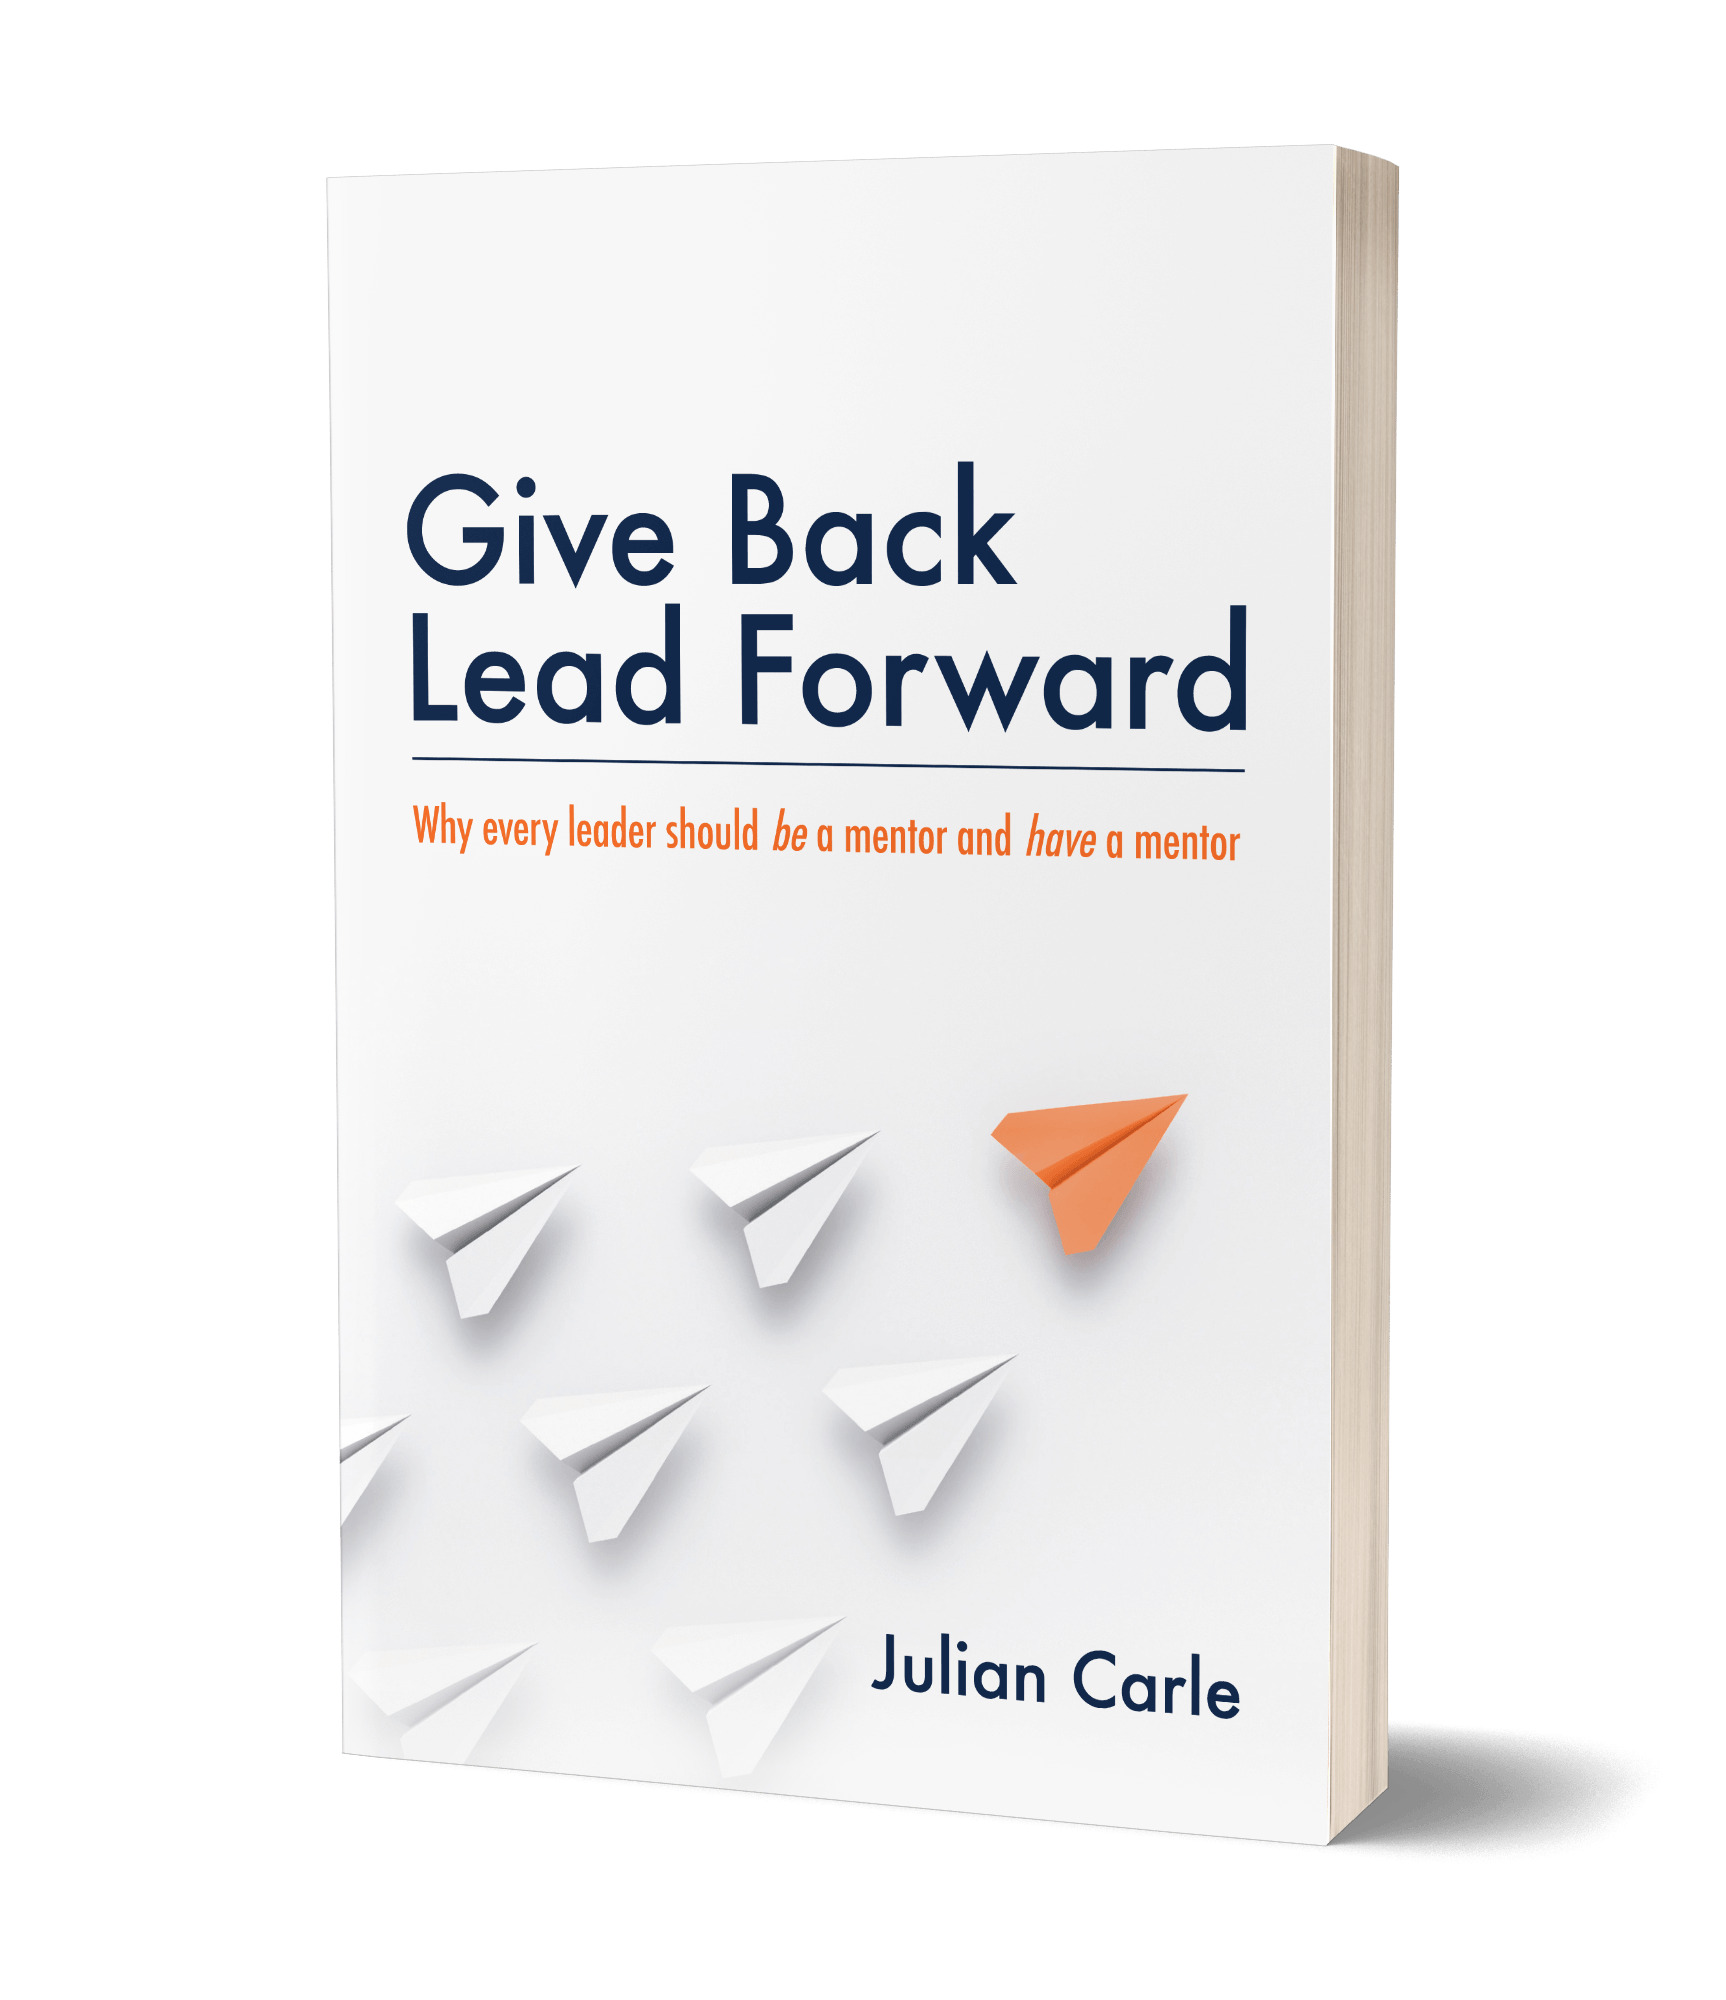 Give Back. Lead Forward by Julian Carle